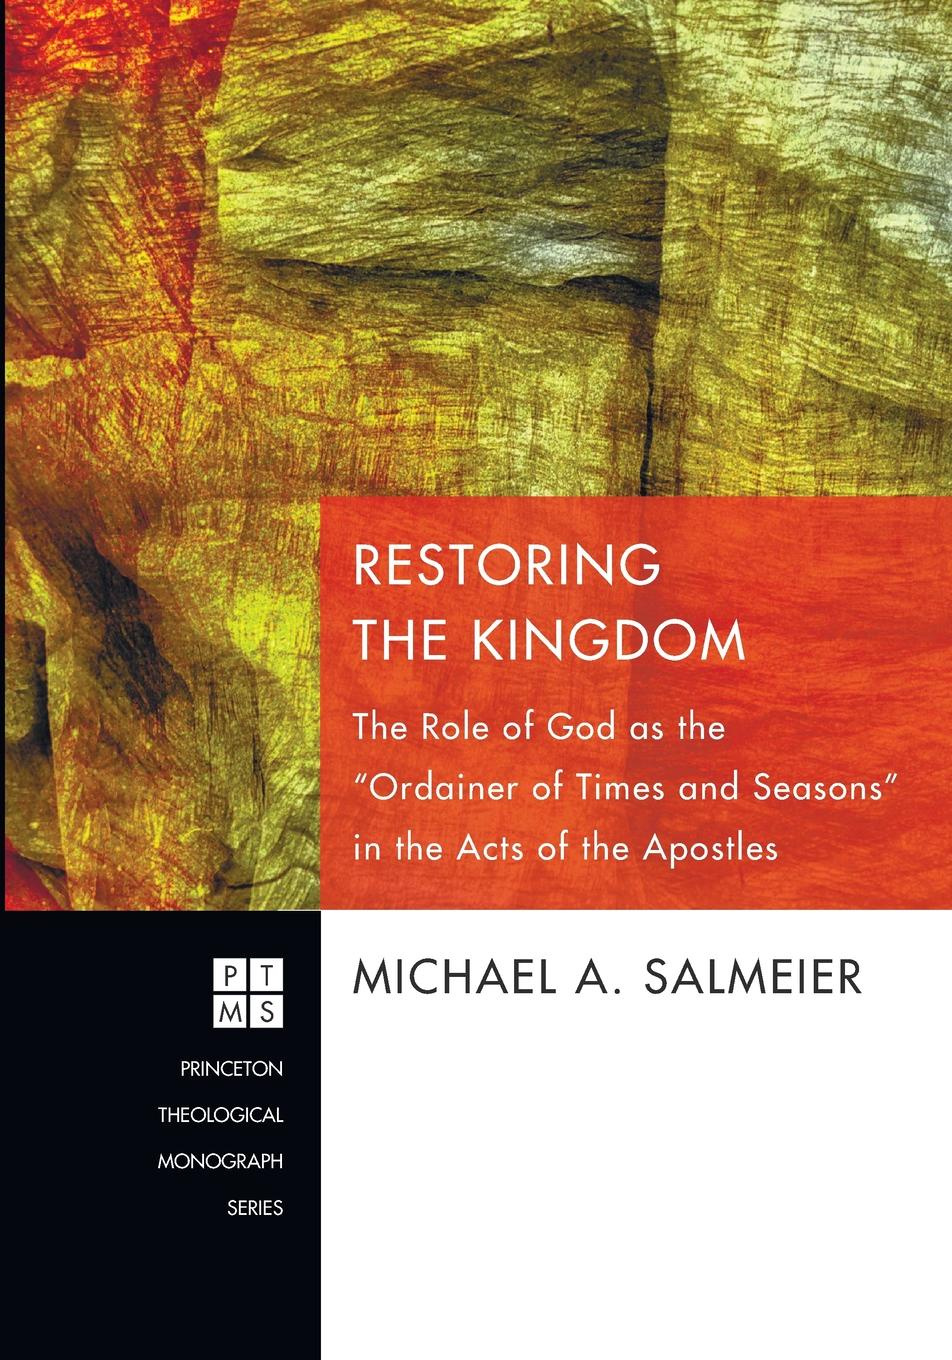 Michael A. Salmeier Restoring the Kingdom. The Role of God as the